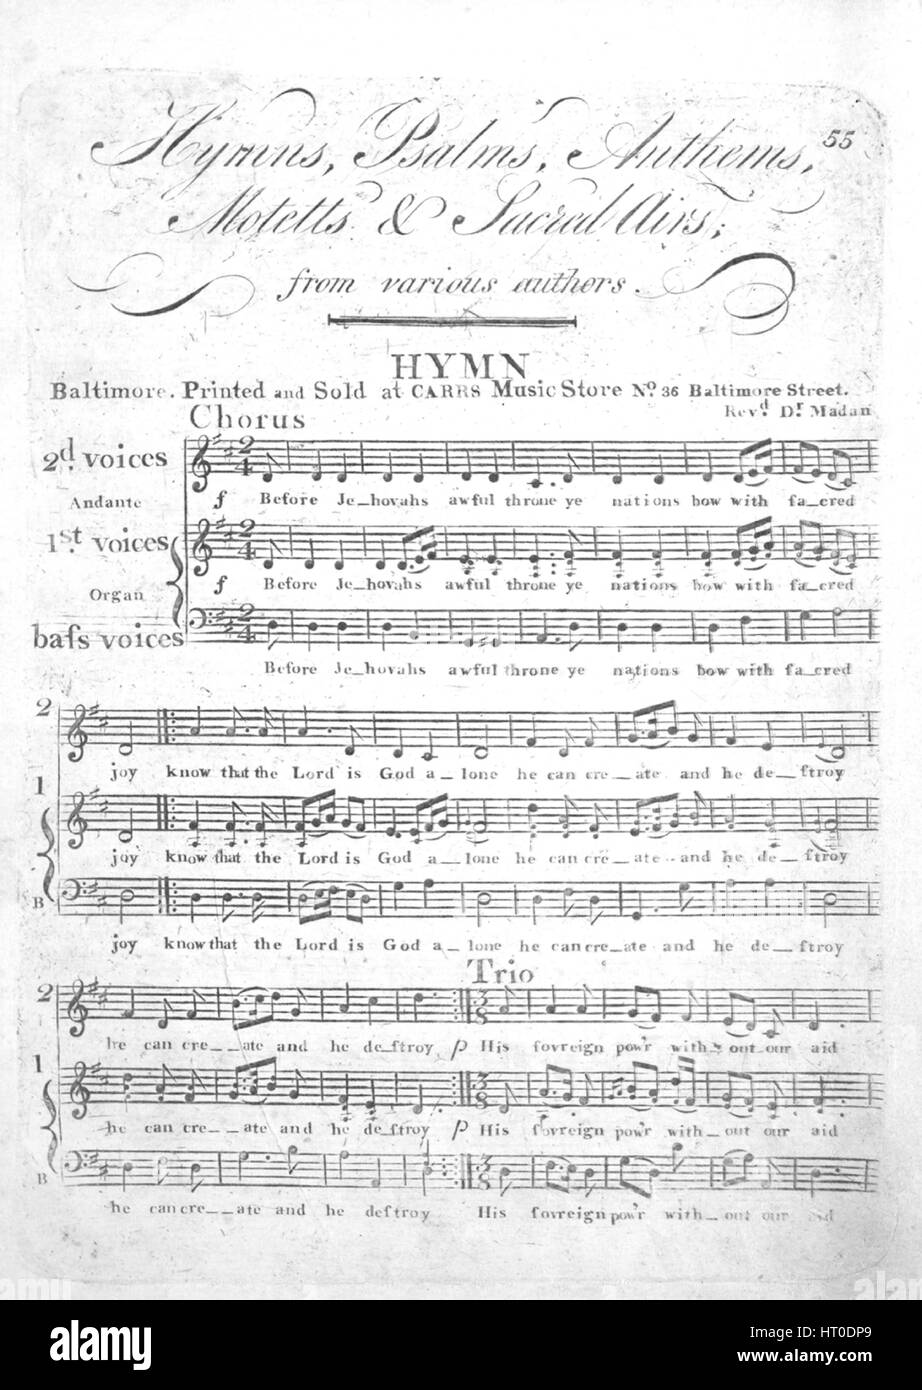 Sheet music cover image of the song 'Hymns, Psalms, Anthems, Motetts and Sacred Airs from various authors Hymn', - Stock Image